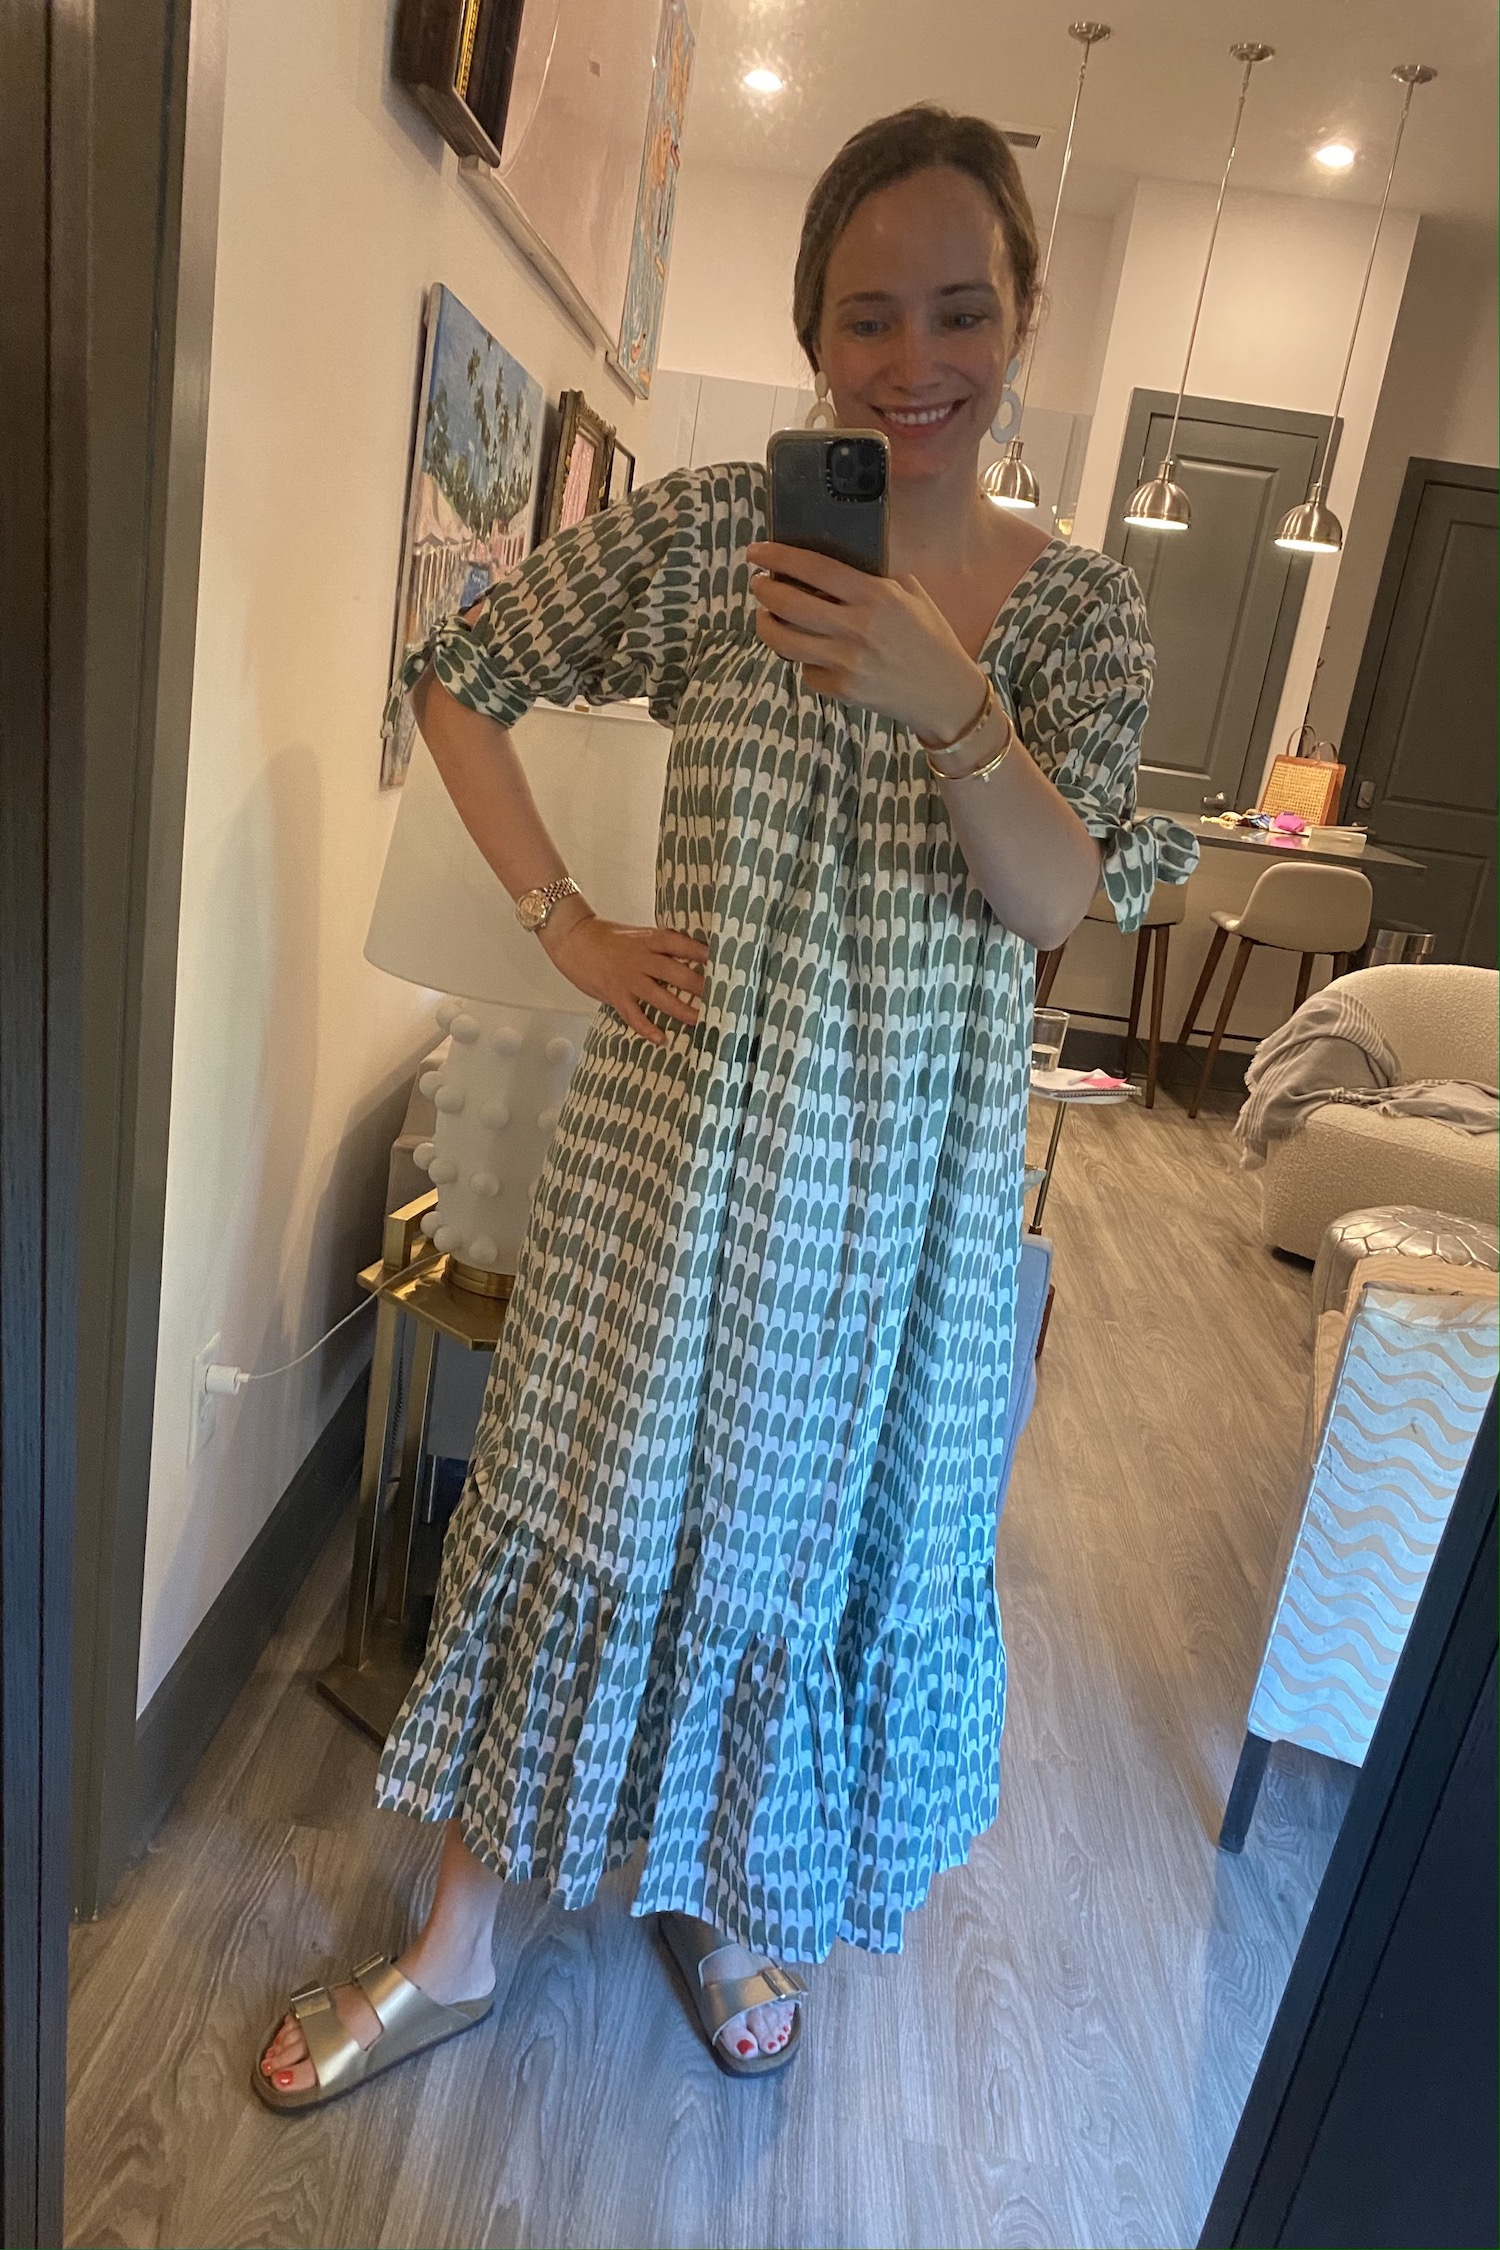 dress from Mirth | What I Wore Last Week 5.28.21